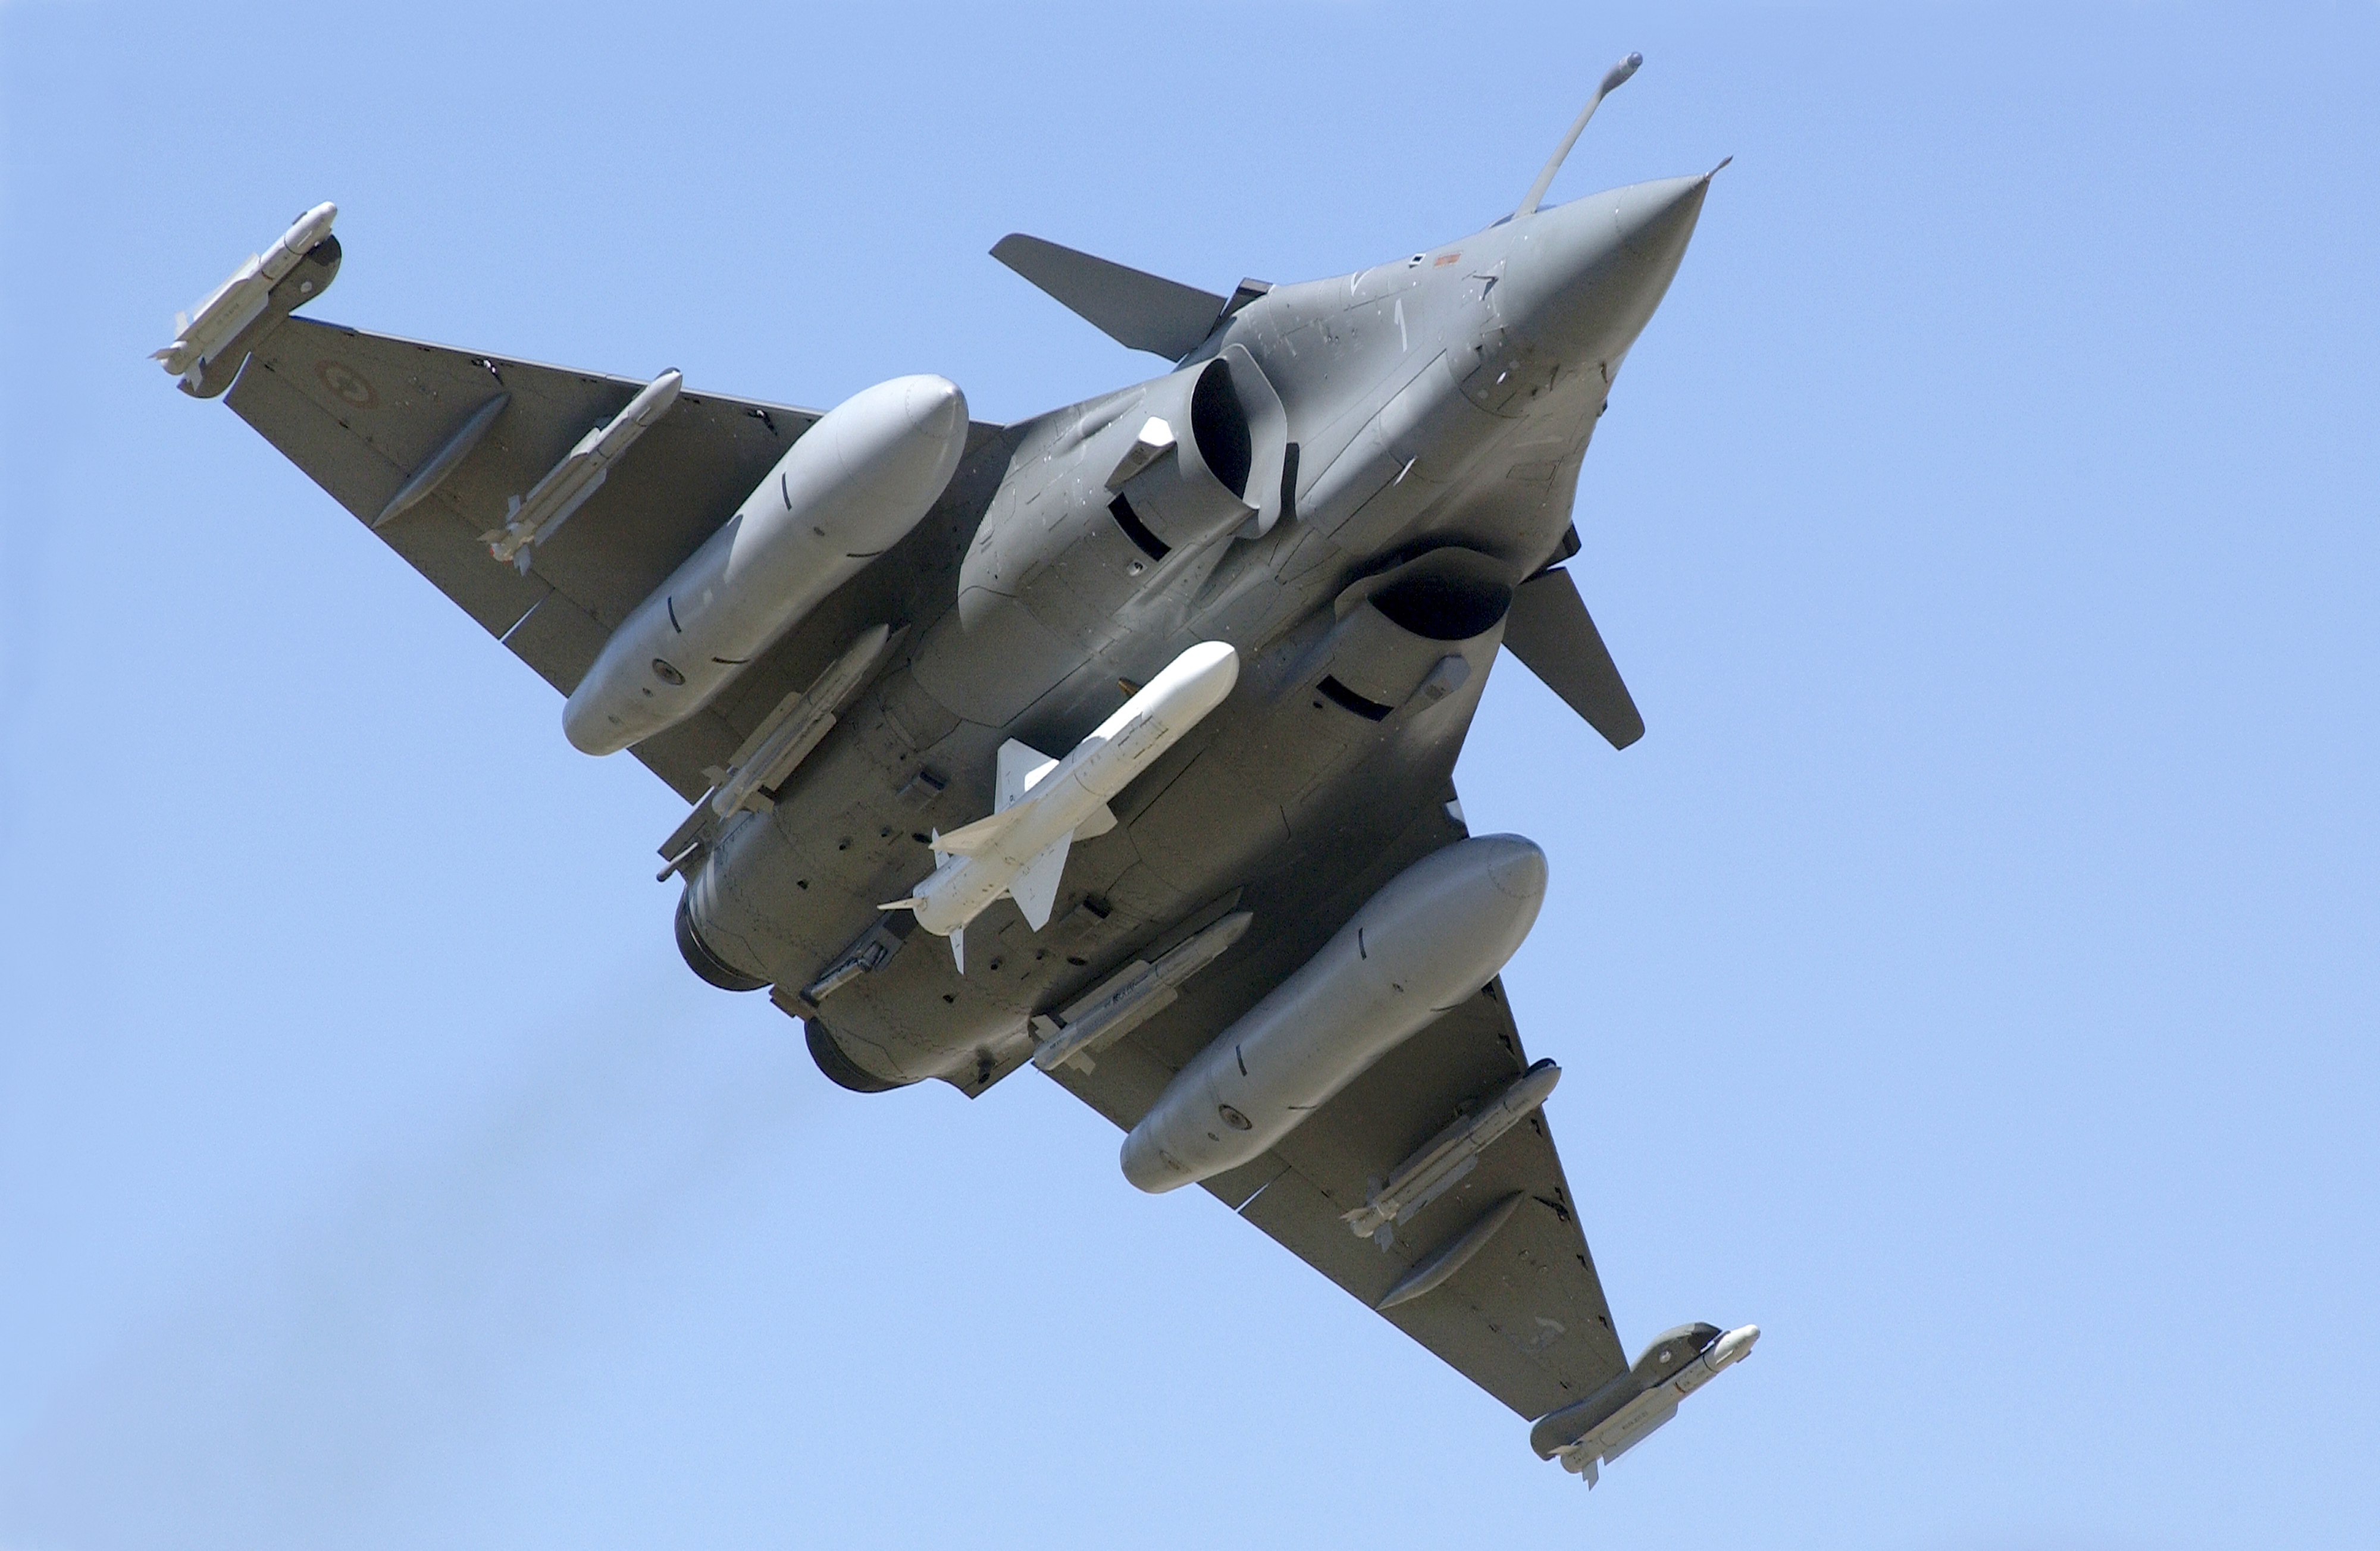 Rafale in flight with Exocet AM39